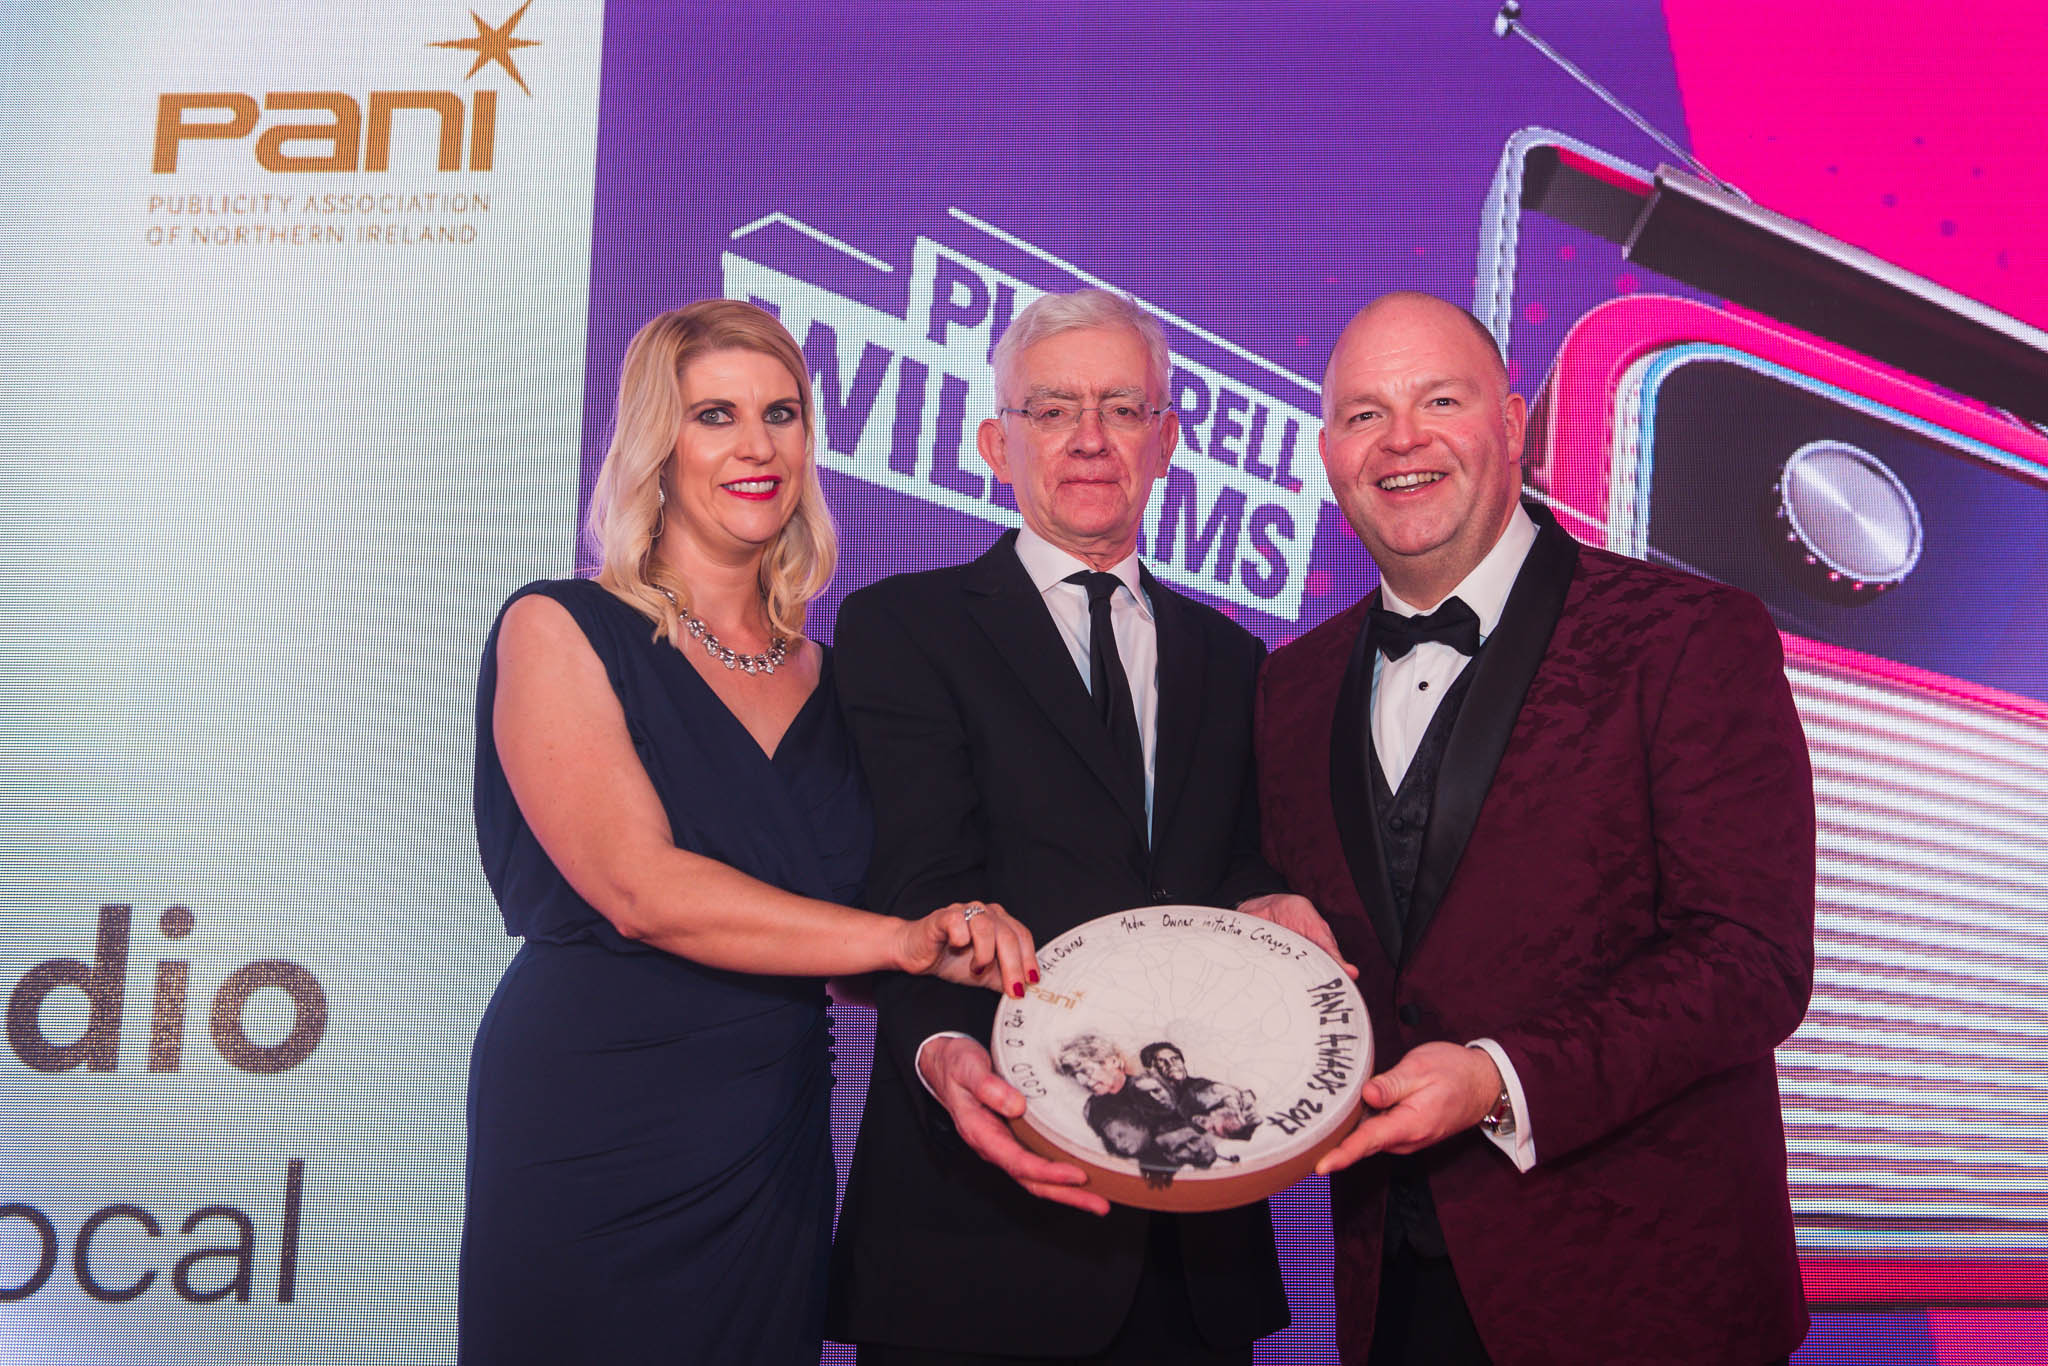 'Proud to be local' Q Radio strikes gold again with a win at the PANI Awards